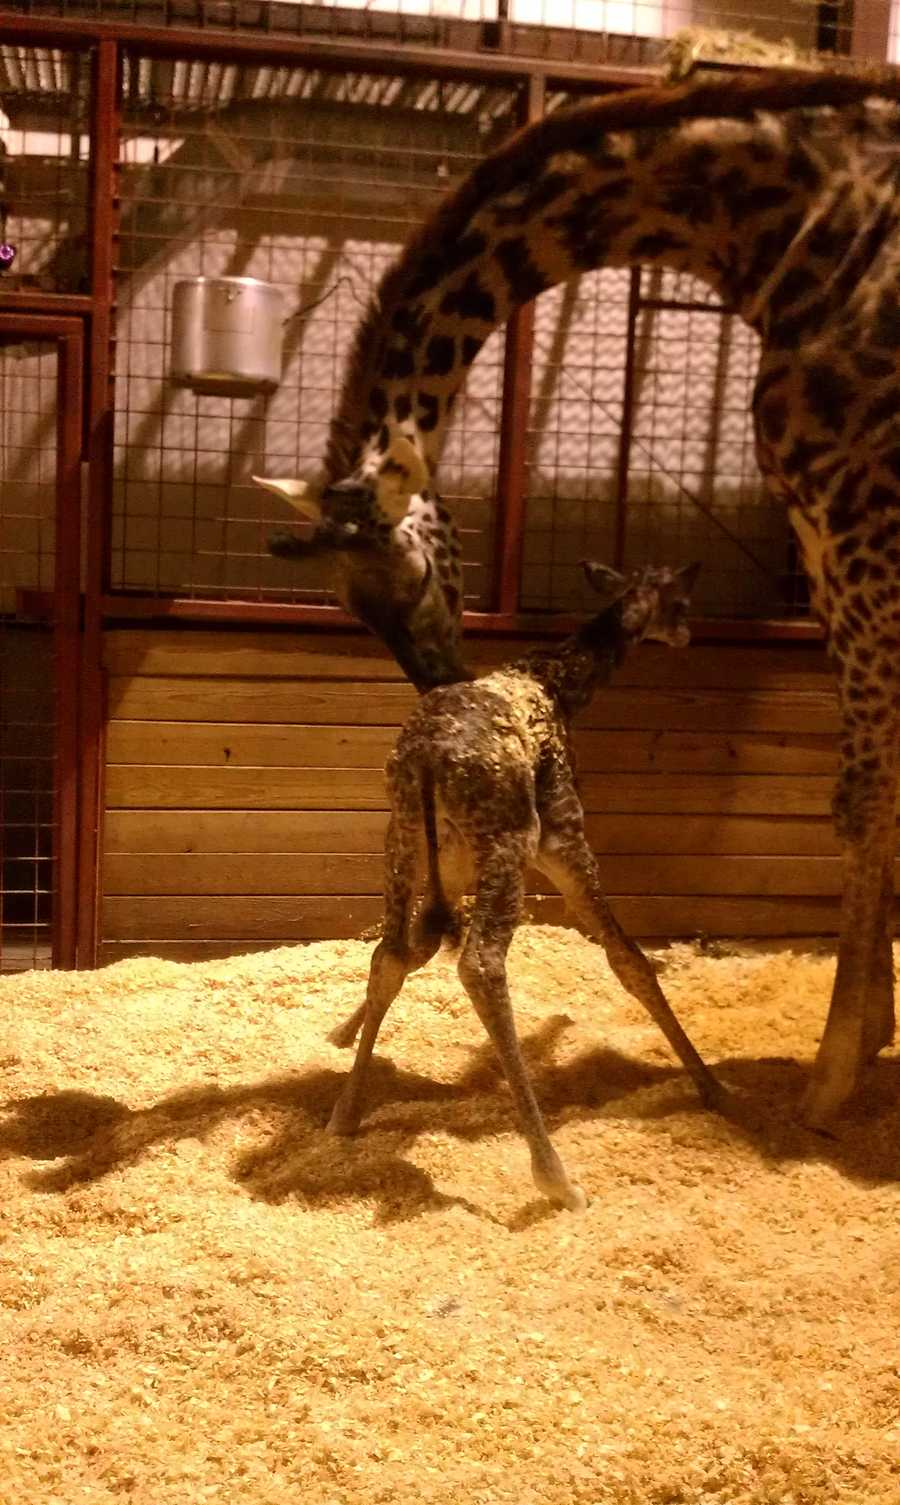 A look at the  baby giraffe taking his first steps.